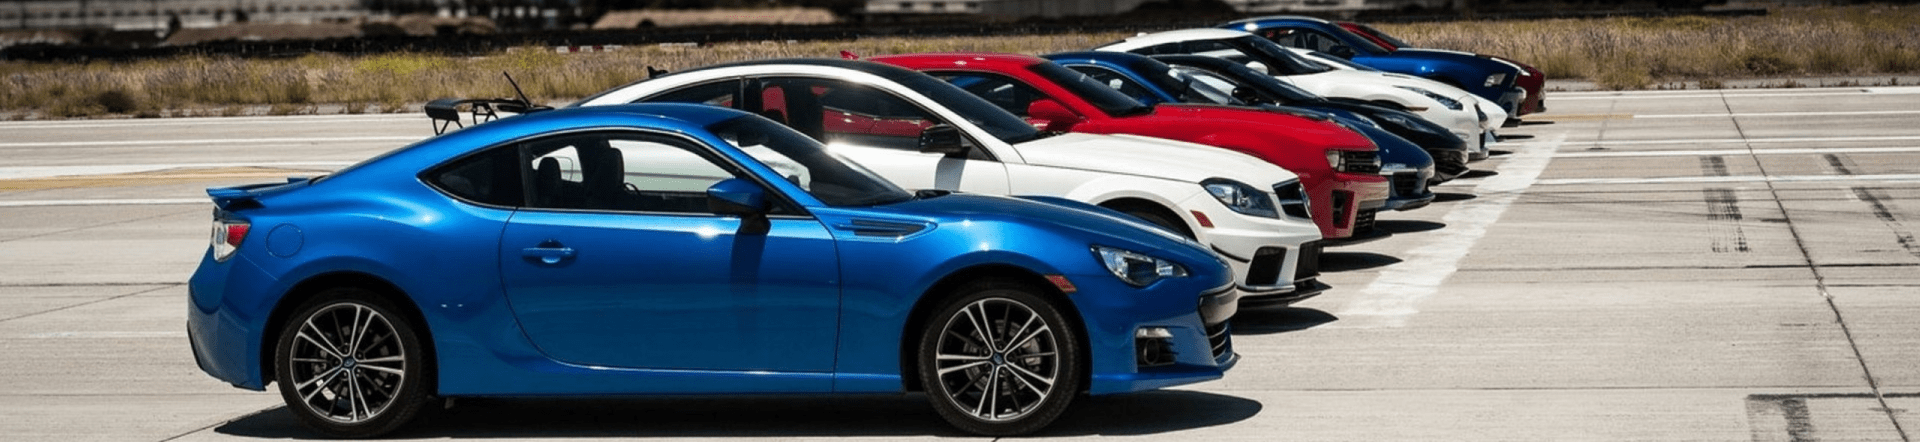 New cars and used care lined up at Brisbane Car Brokers